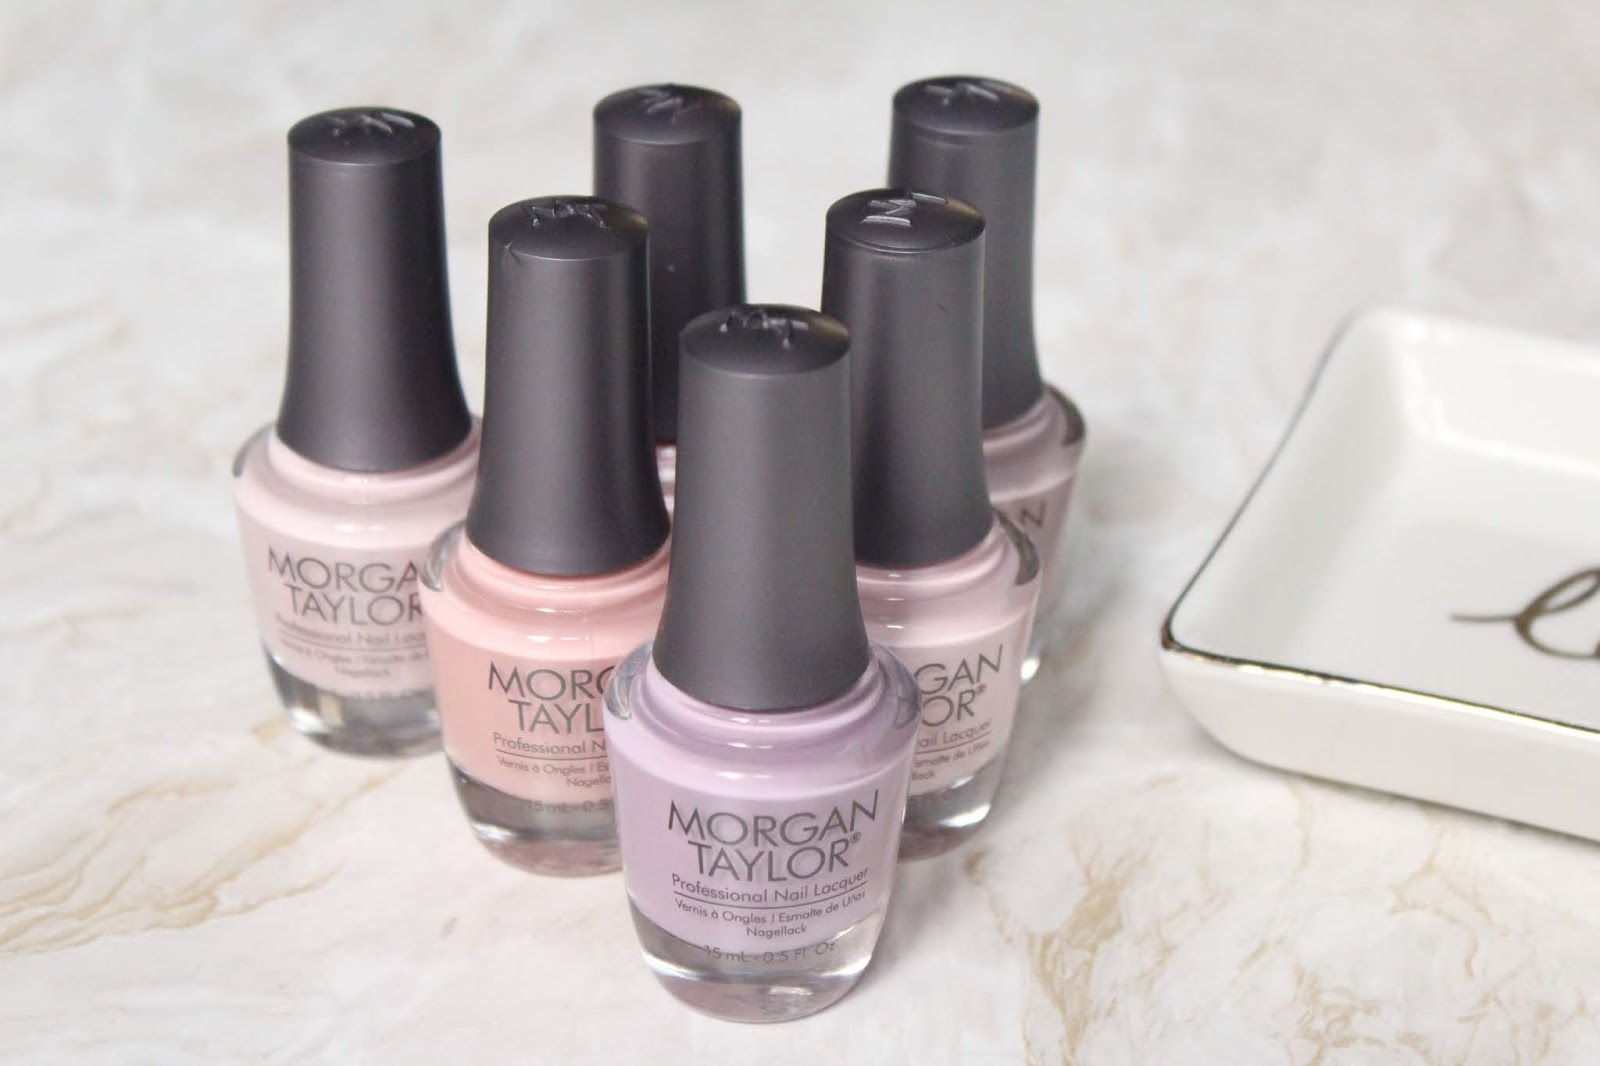 Morgan Taylor The Colour of Petals Collection Review (+ Swatches)